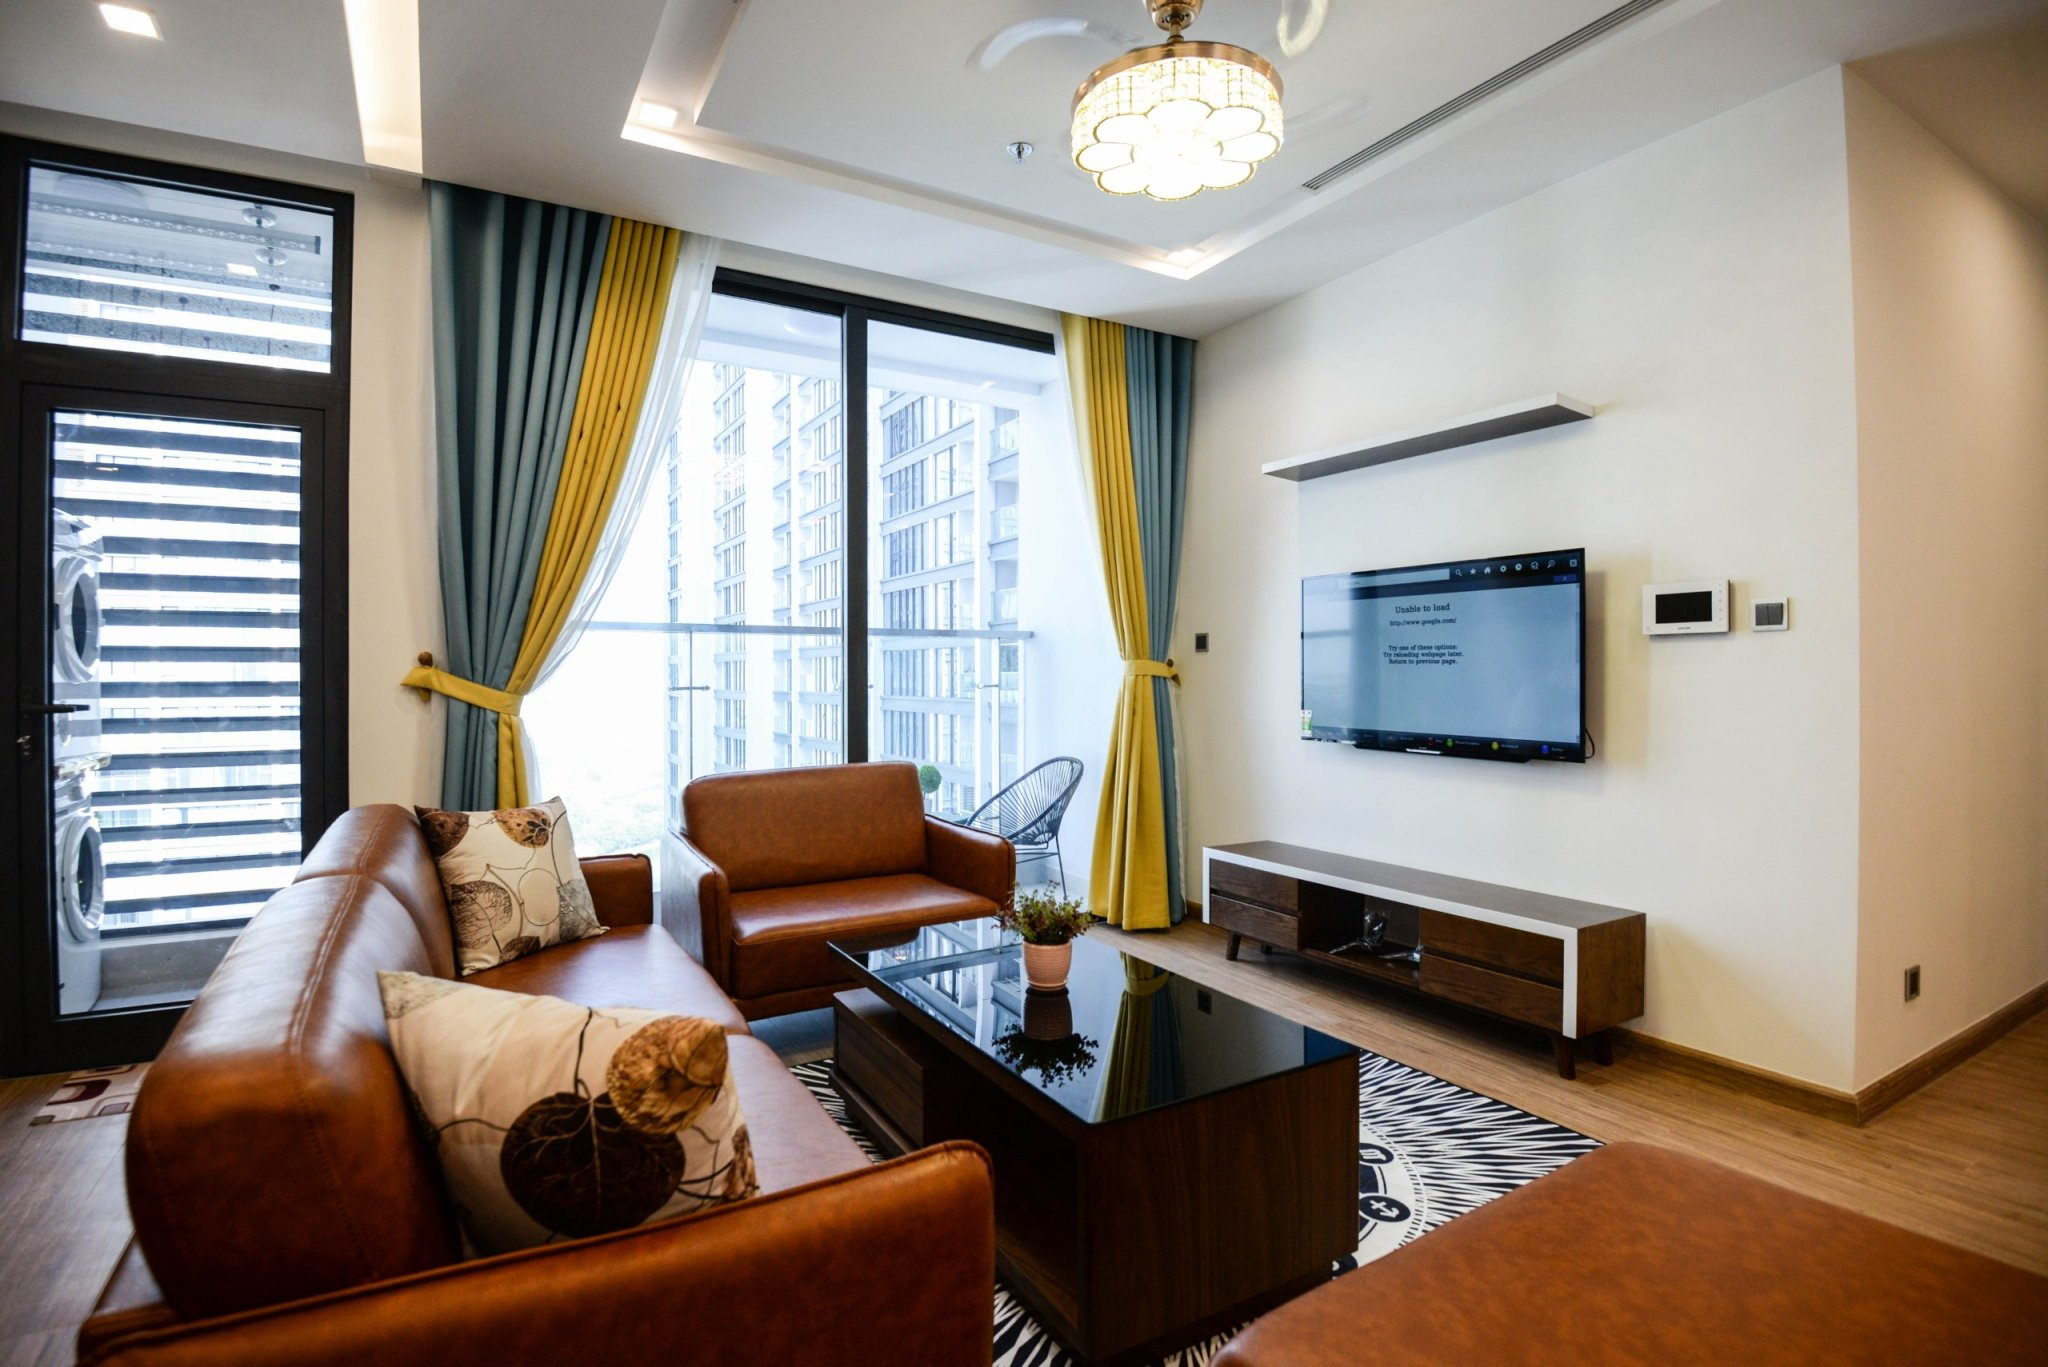 Spacious Apartment Vinhomes Metropolis with 4 bedrooms for rent